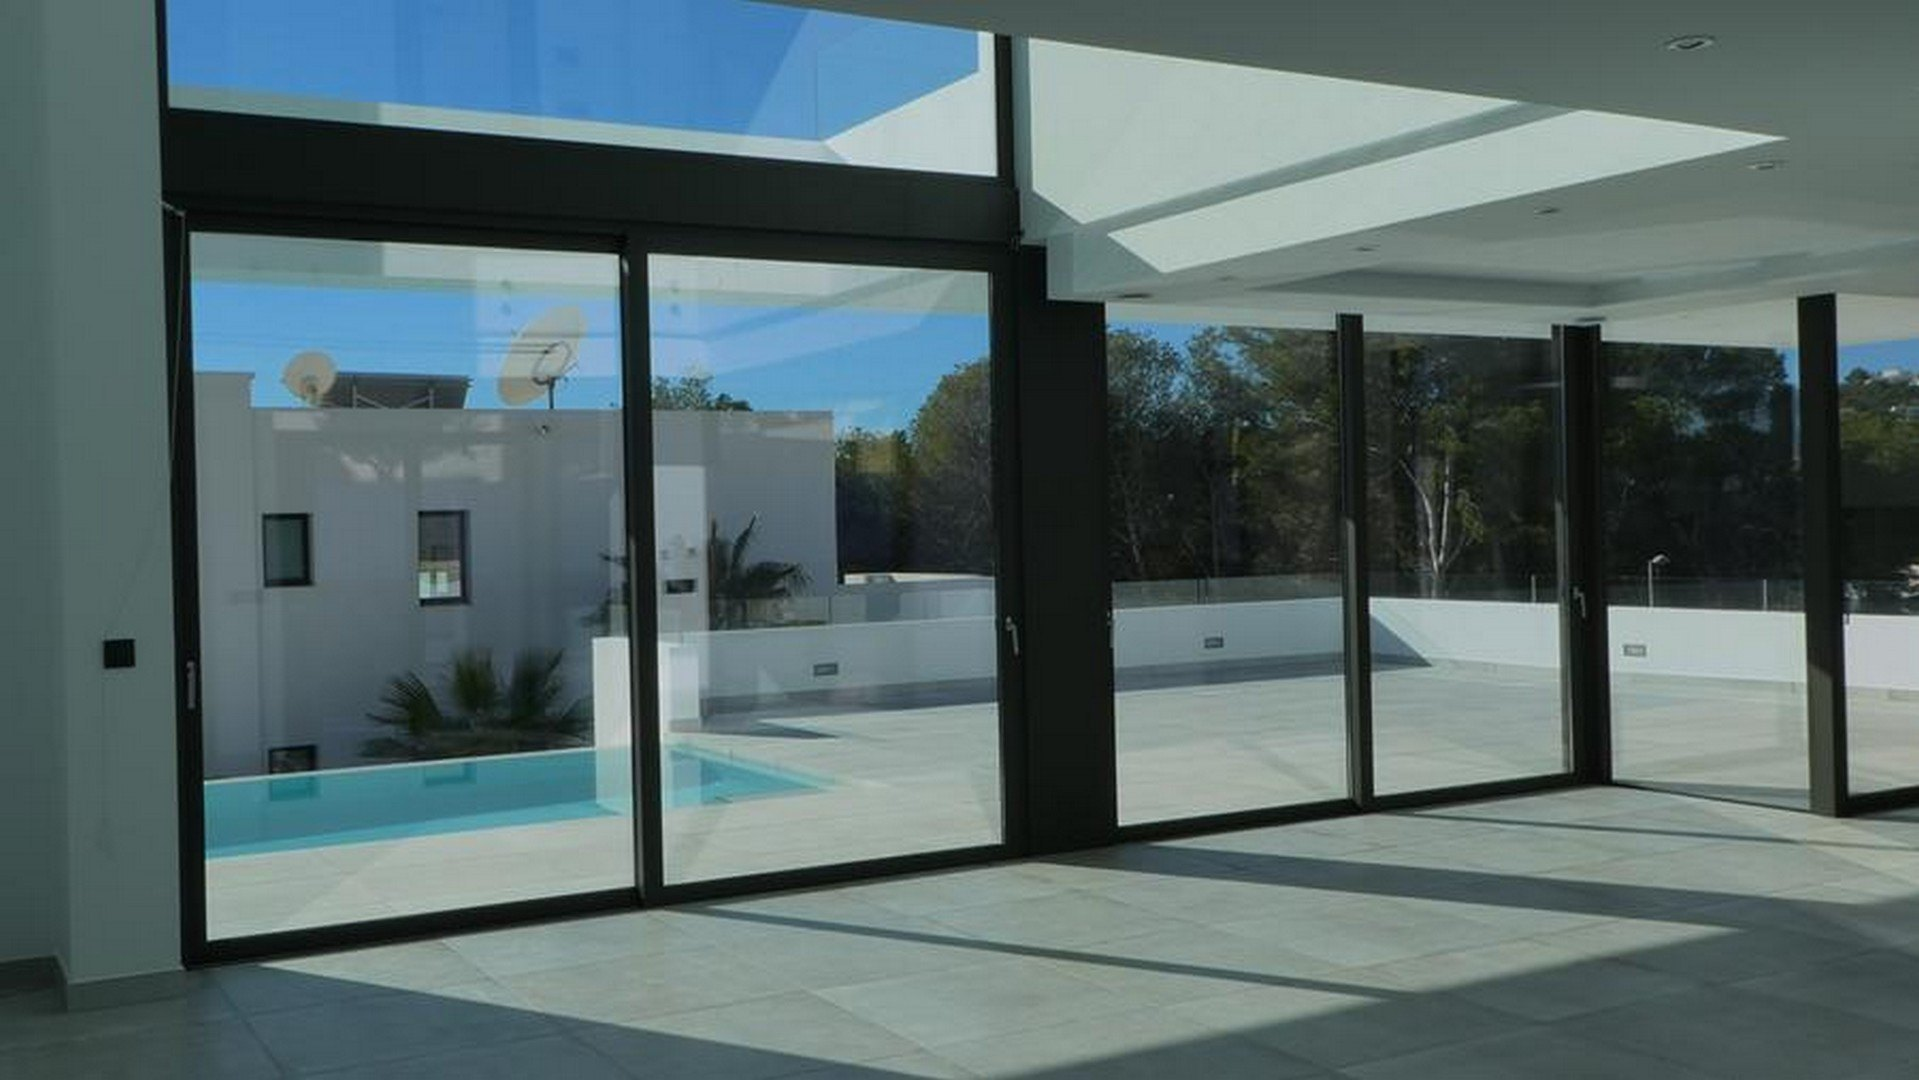 Photogallery - 7 - Build a villa in Moraira: villas for sale in Moraira